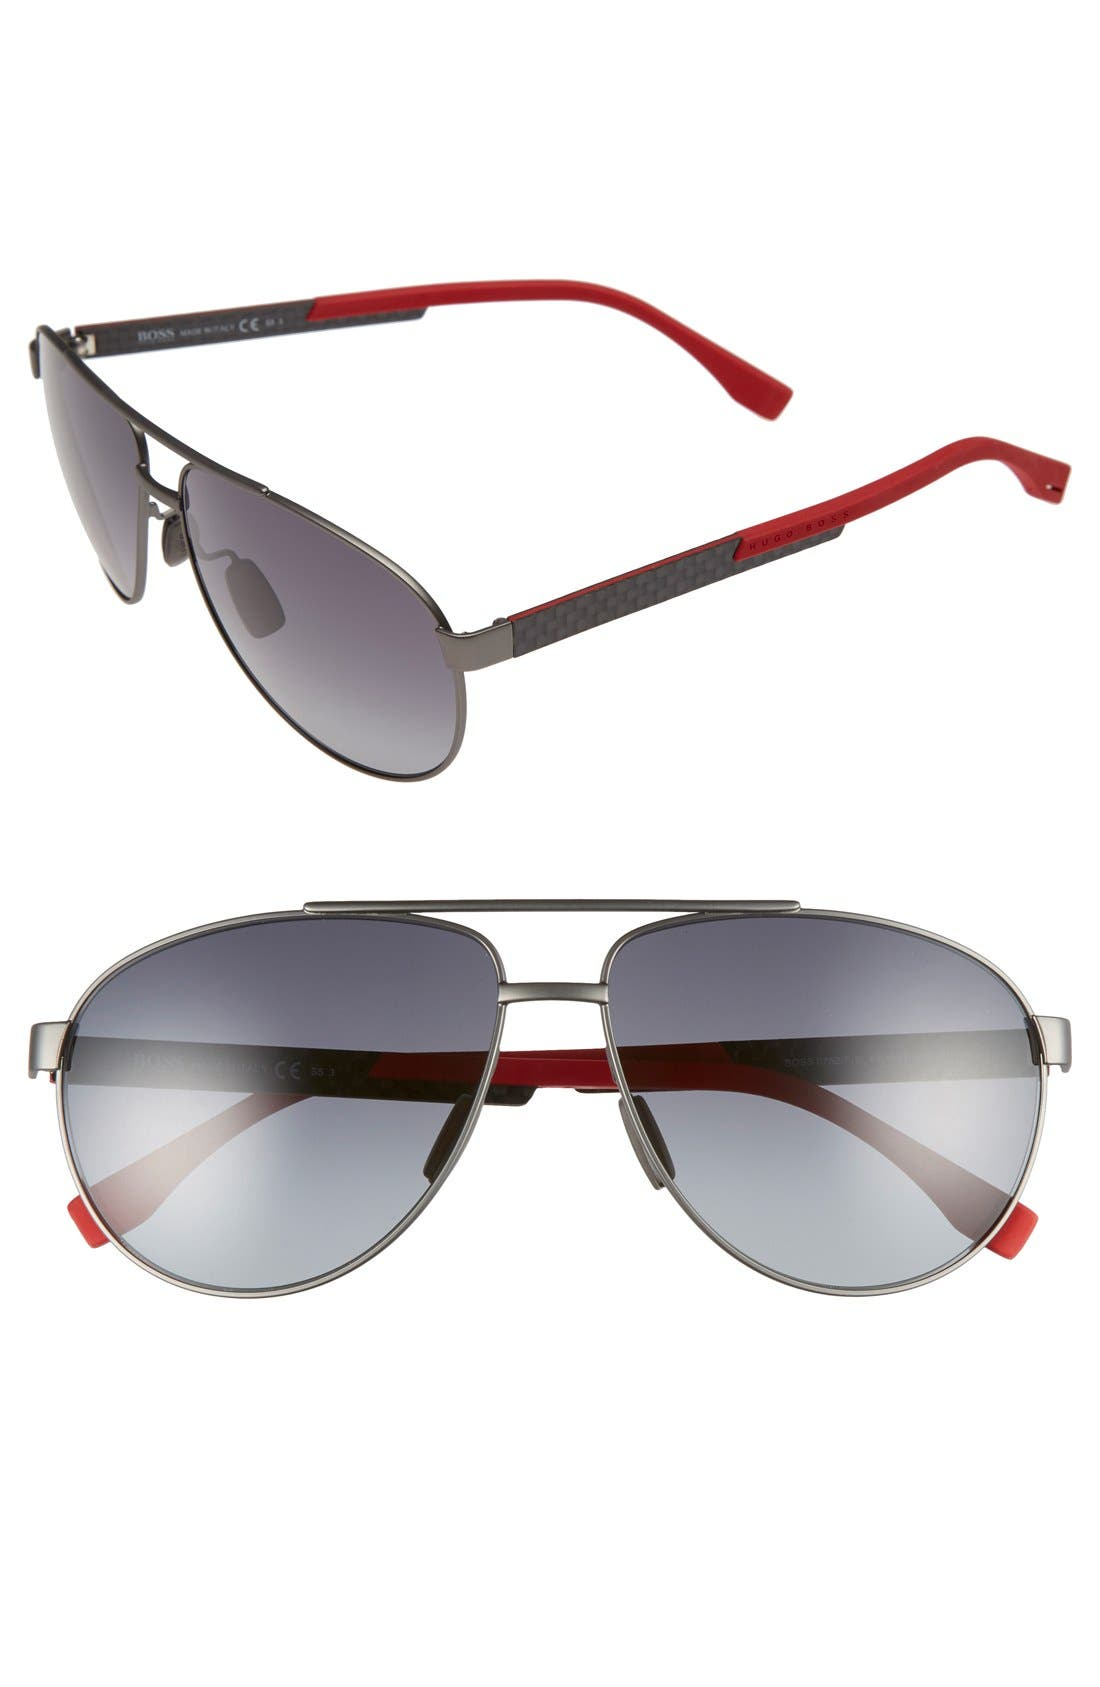 63mm Aviator Sunglasses,                             Main thumbnail 1, color,                             Red Carbon/ Gray Gradient